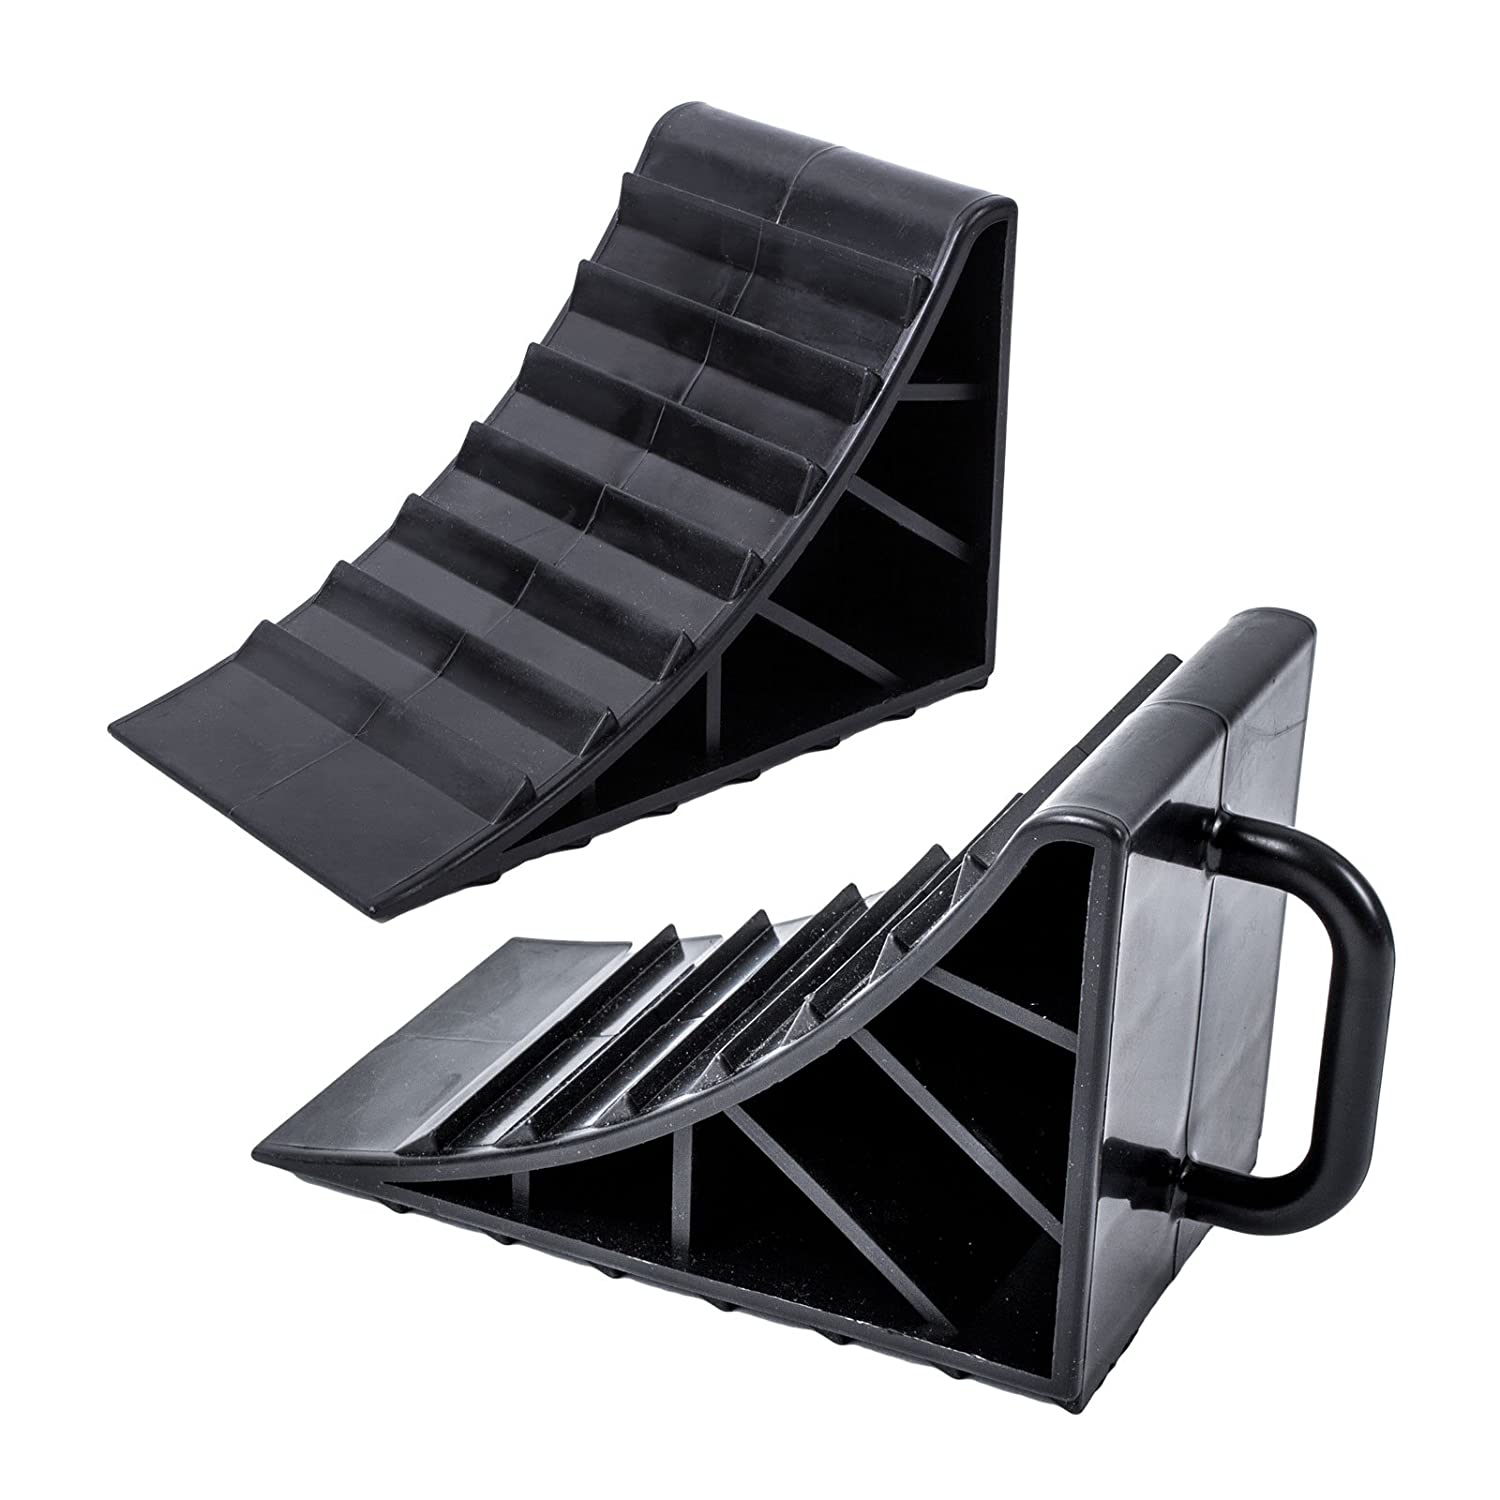 ProPlus plastic chock, black, set of 2 with handle for caravan, motor home and trailer. Pro Plus 123656